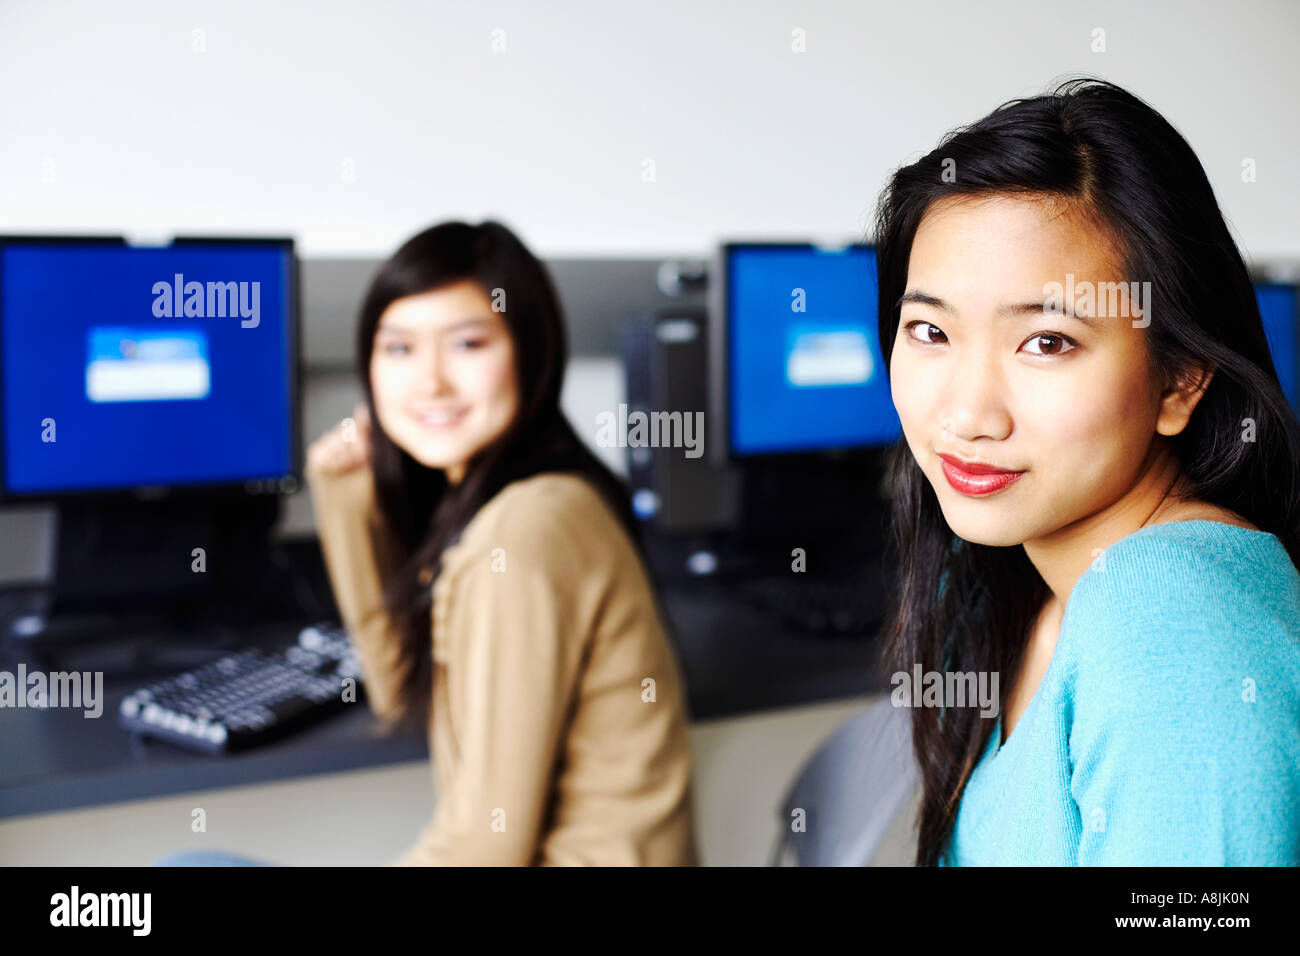 Portrait of two young women sitting in front of computers and smiling Stock Photo